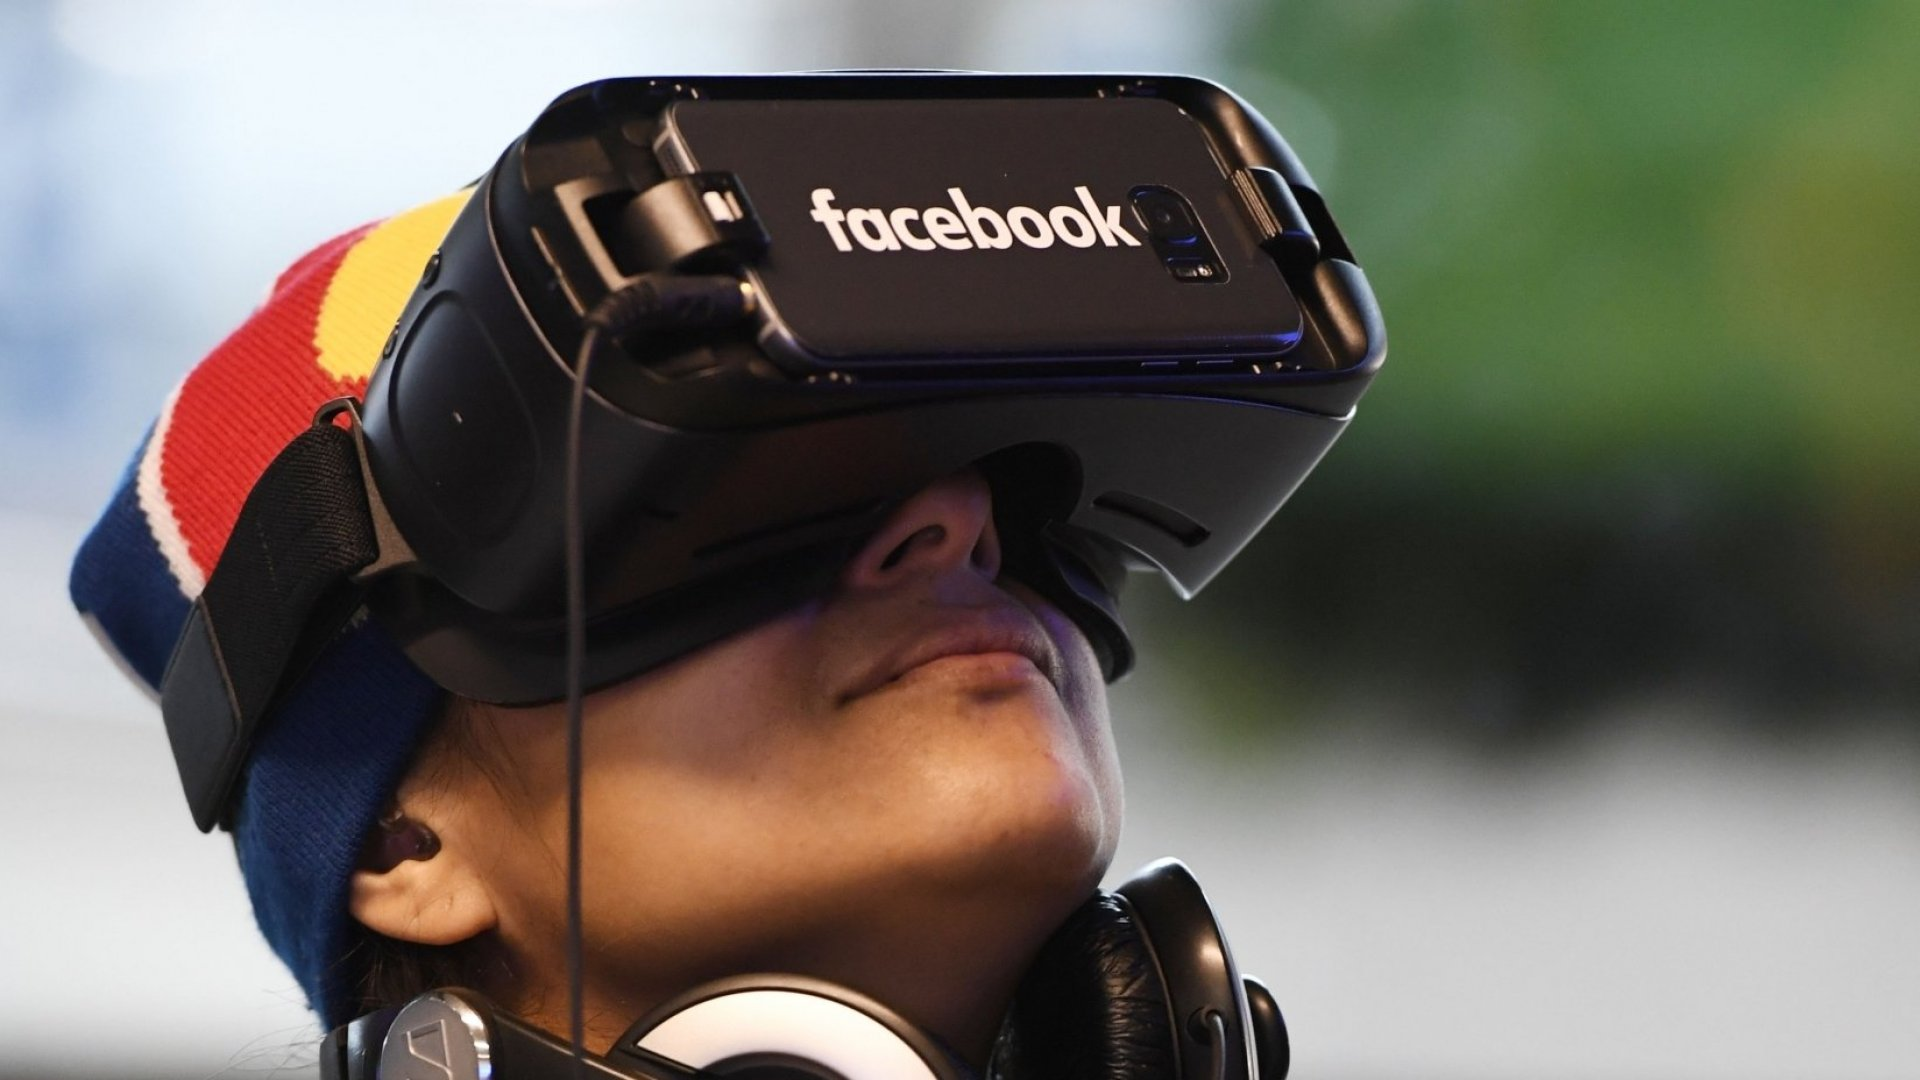 Despite embracing virtual reality, Facebook only ranked 50th in patents last year.